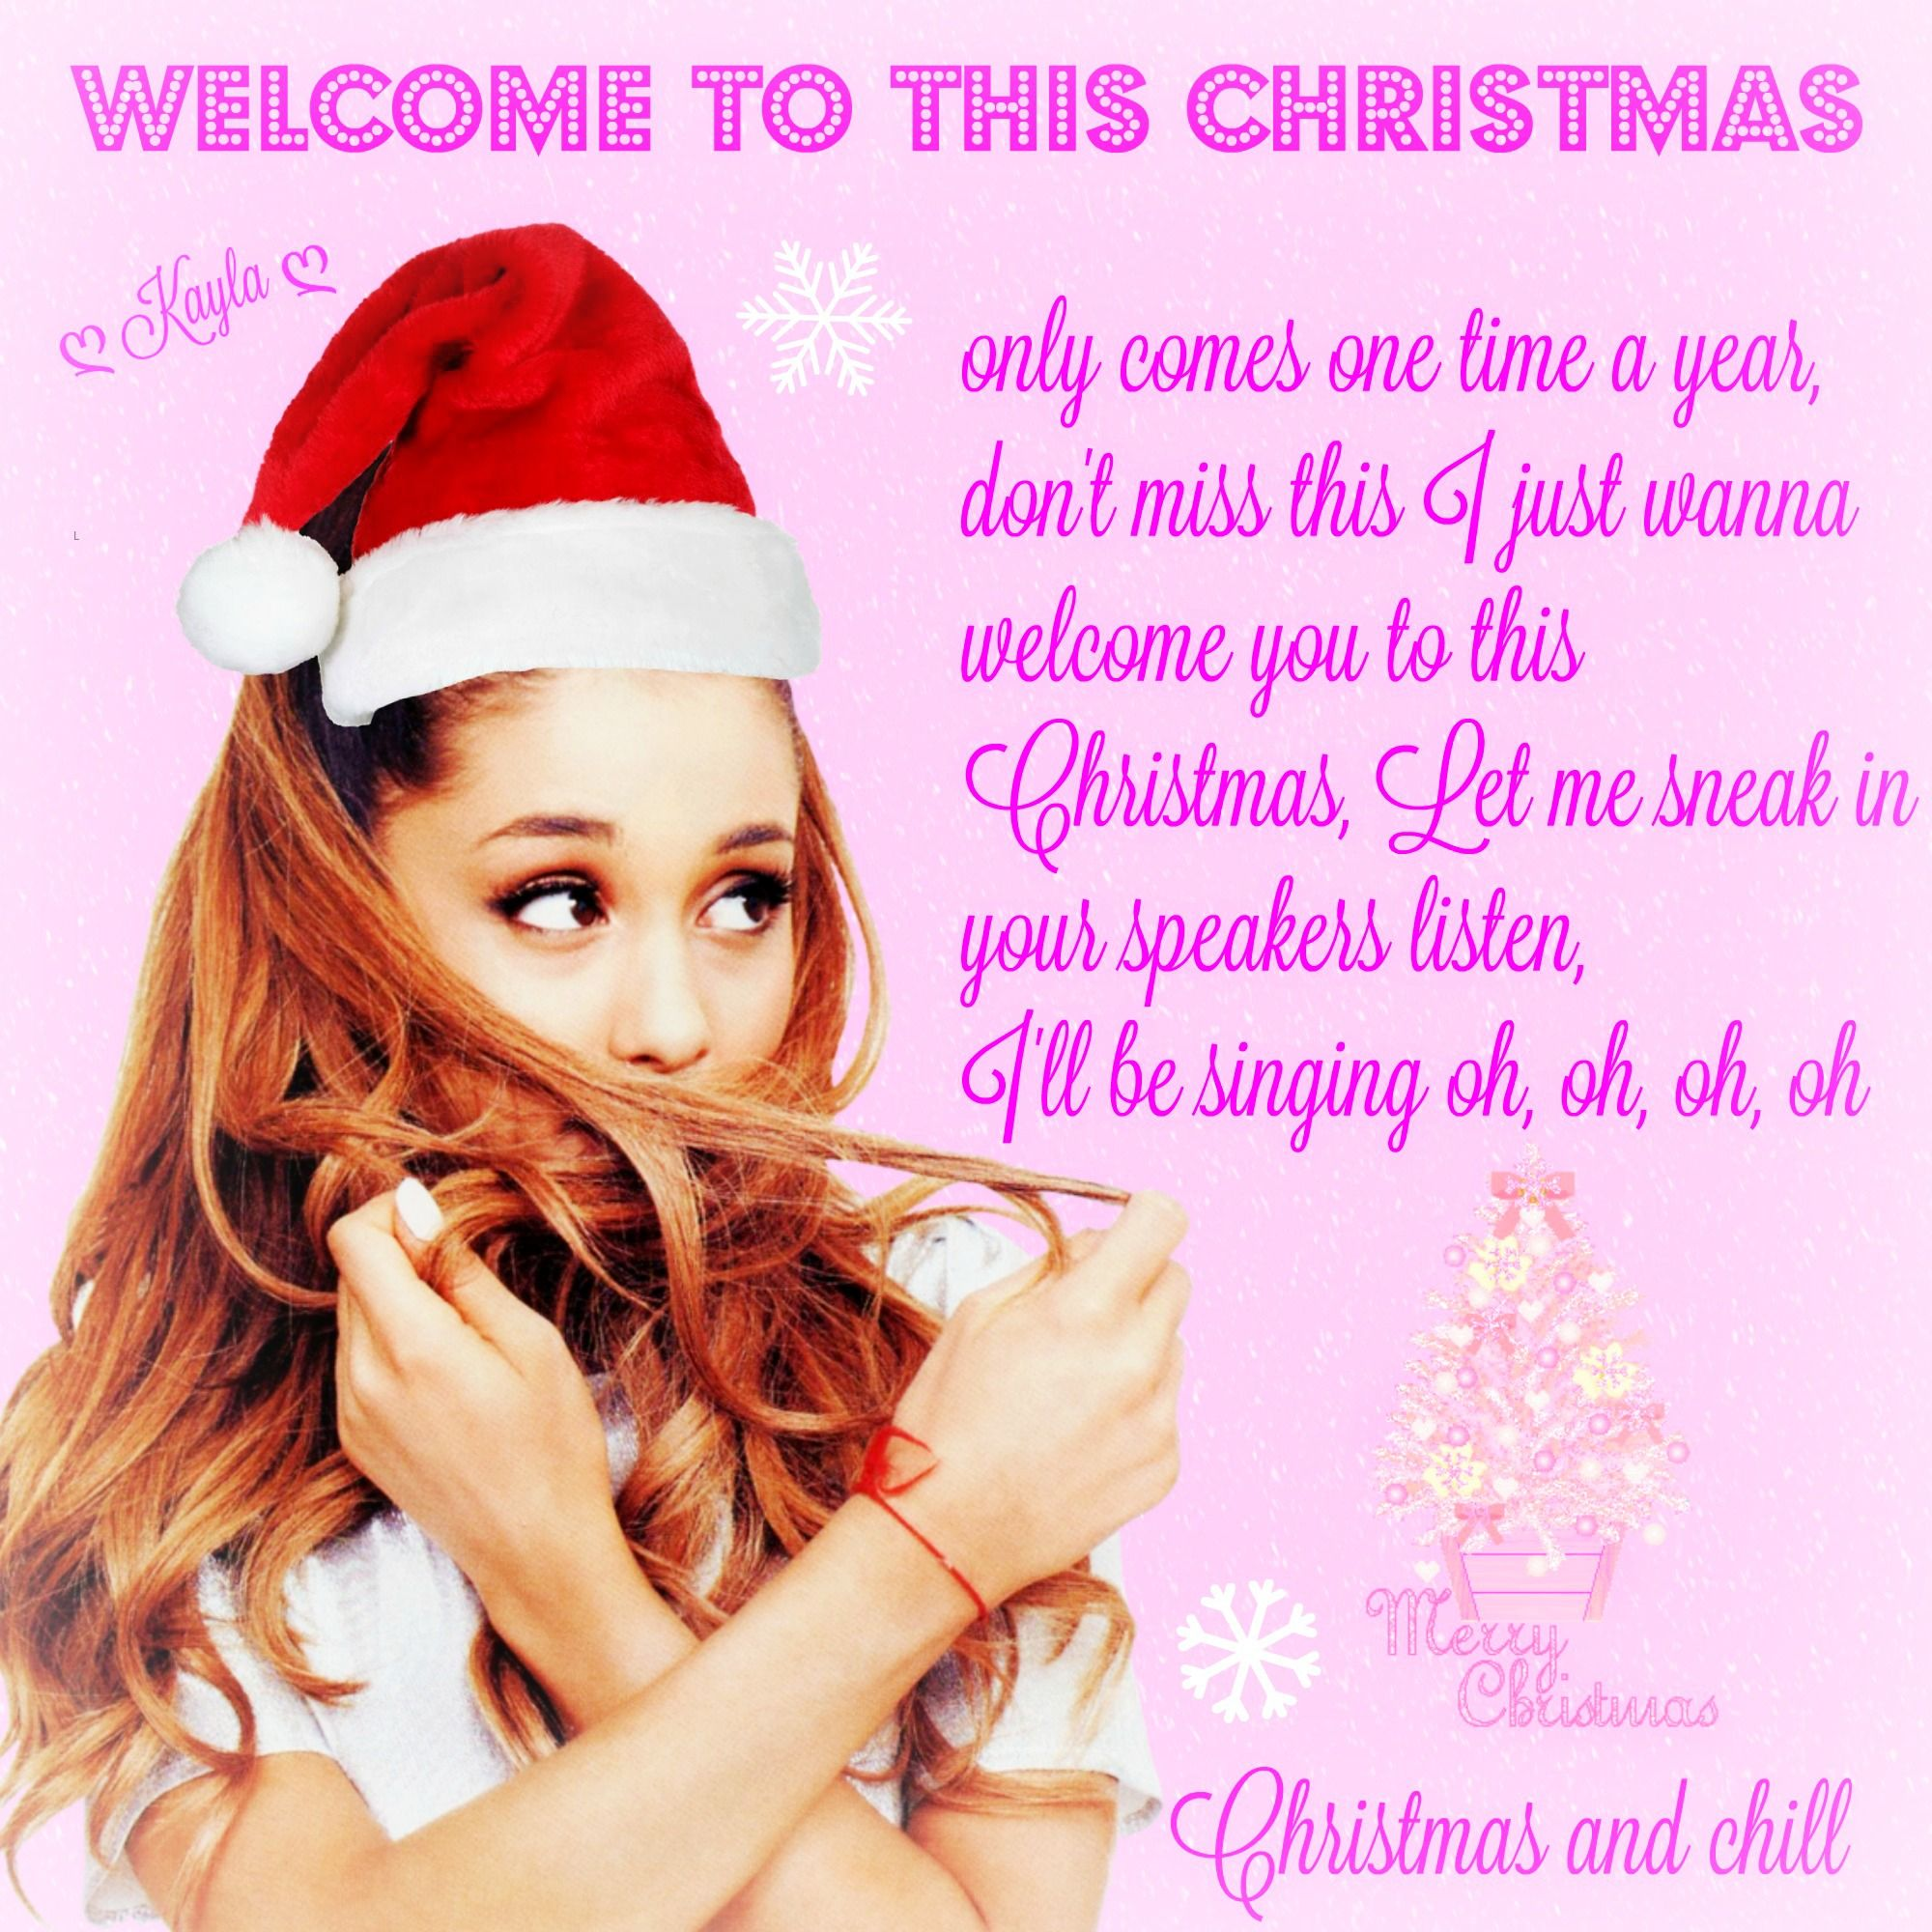 Christmas And Chill.My Edit Pinterest ღ Kayla ღ Christmas And Chill